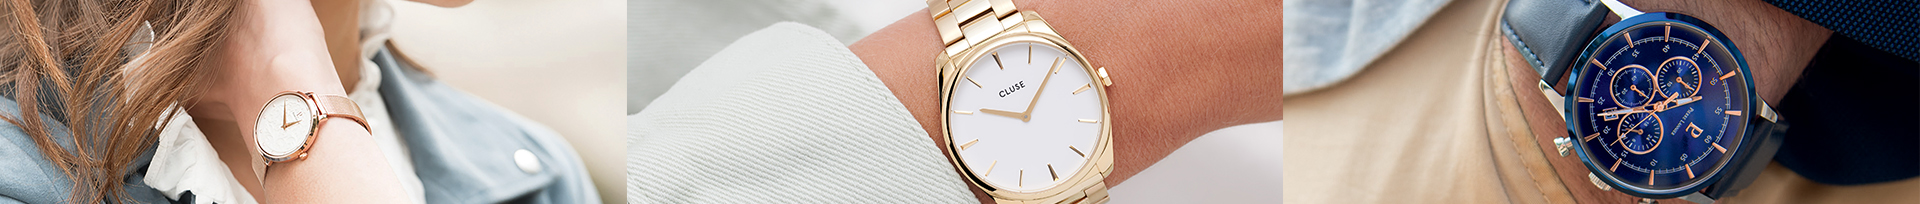 watches-category-banner1.jpg